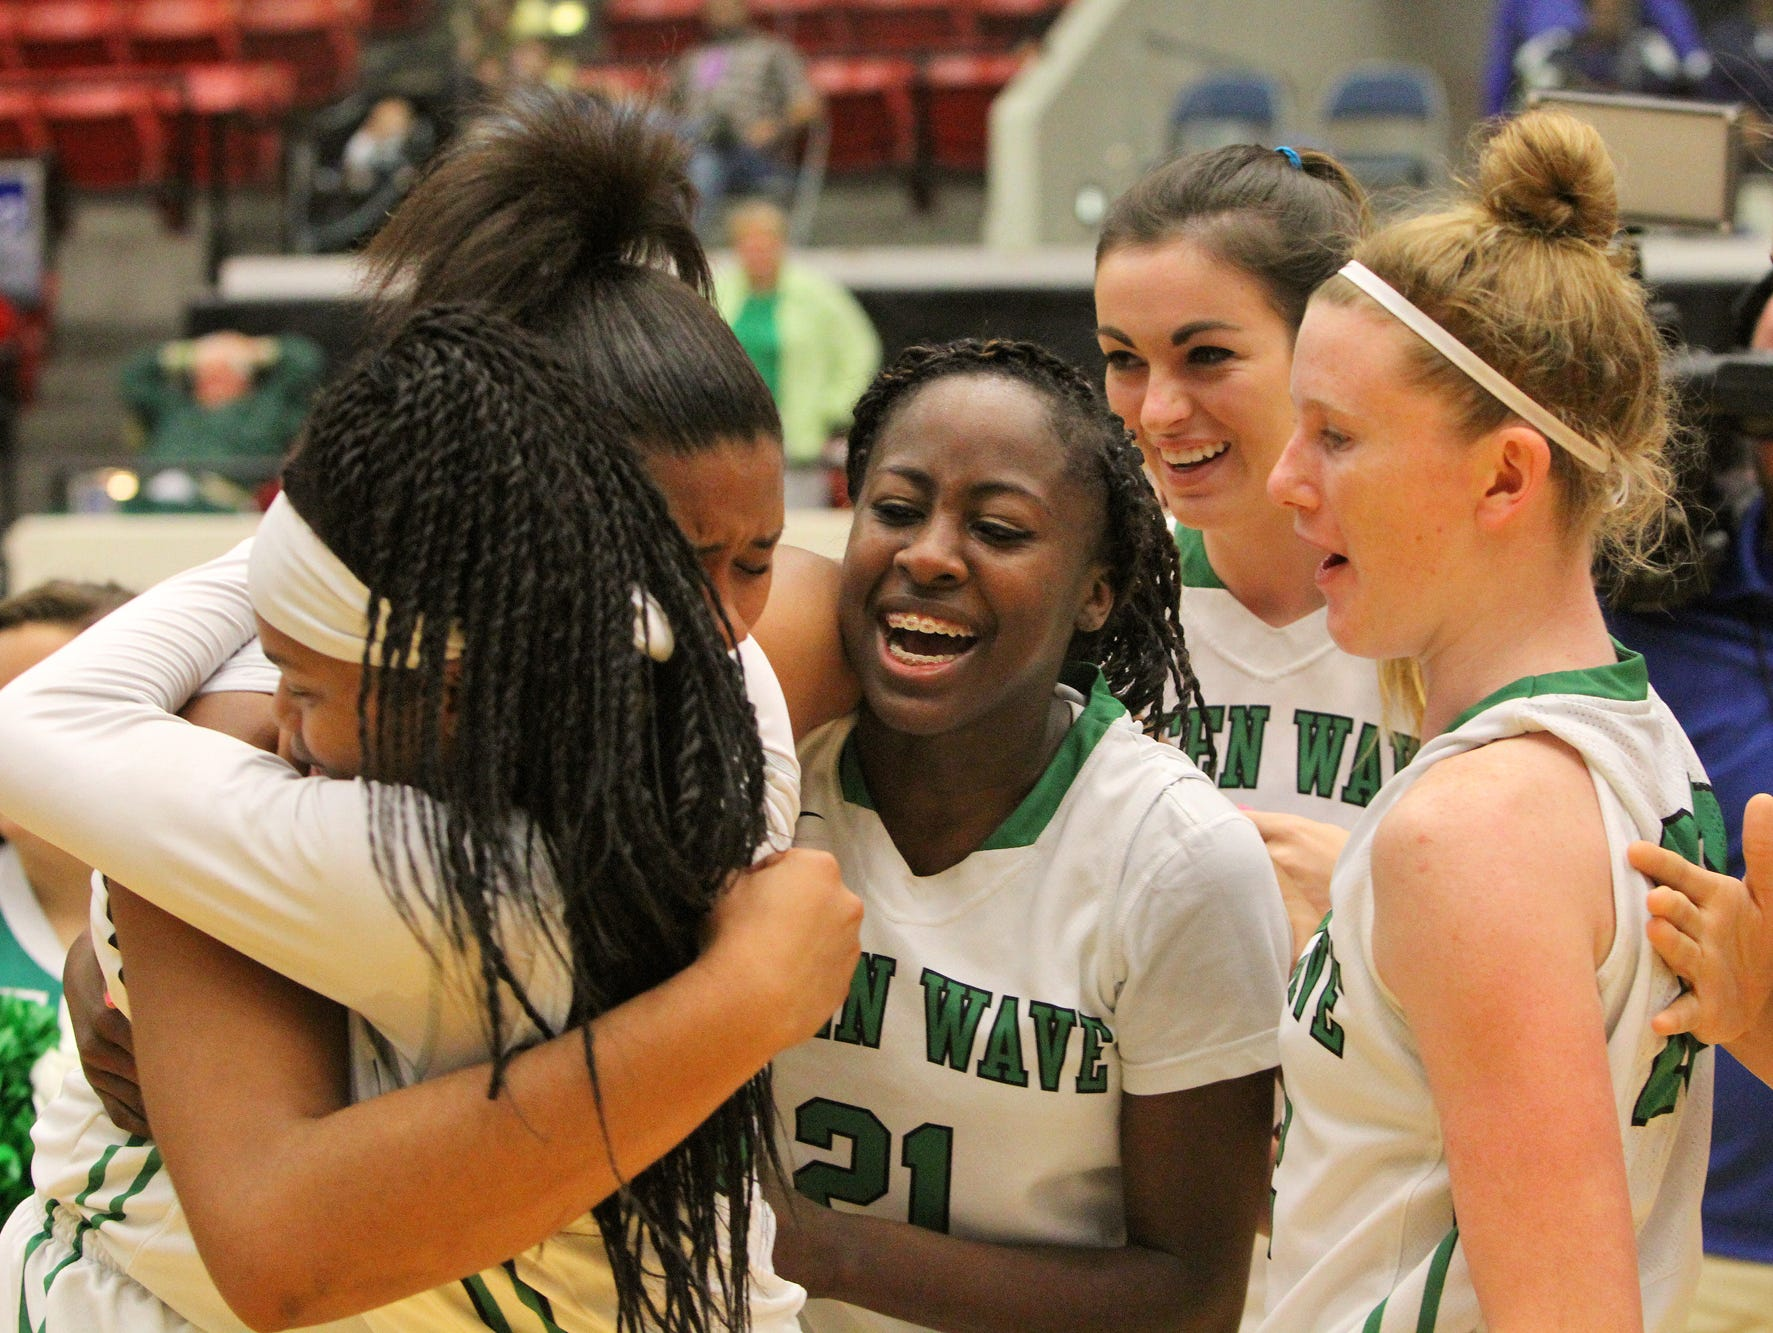 Fort Myers meets midcourt to celebrate winning the state title against Northeast during the FHSAA Girls 6A basketball finals Saturday February 20, 2016 in Lakeland, Florida. Fort Myers won the title 60-45. Photos by Cindy Skop 2016